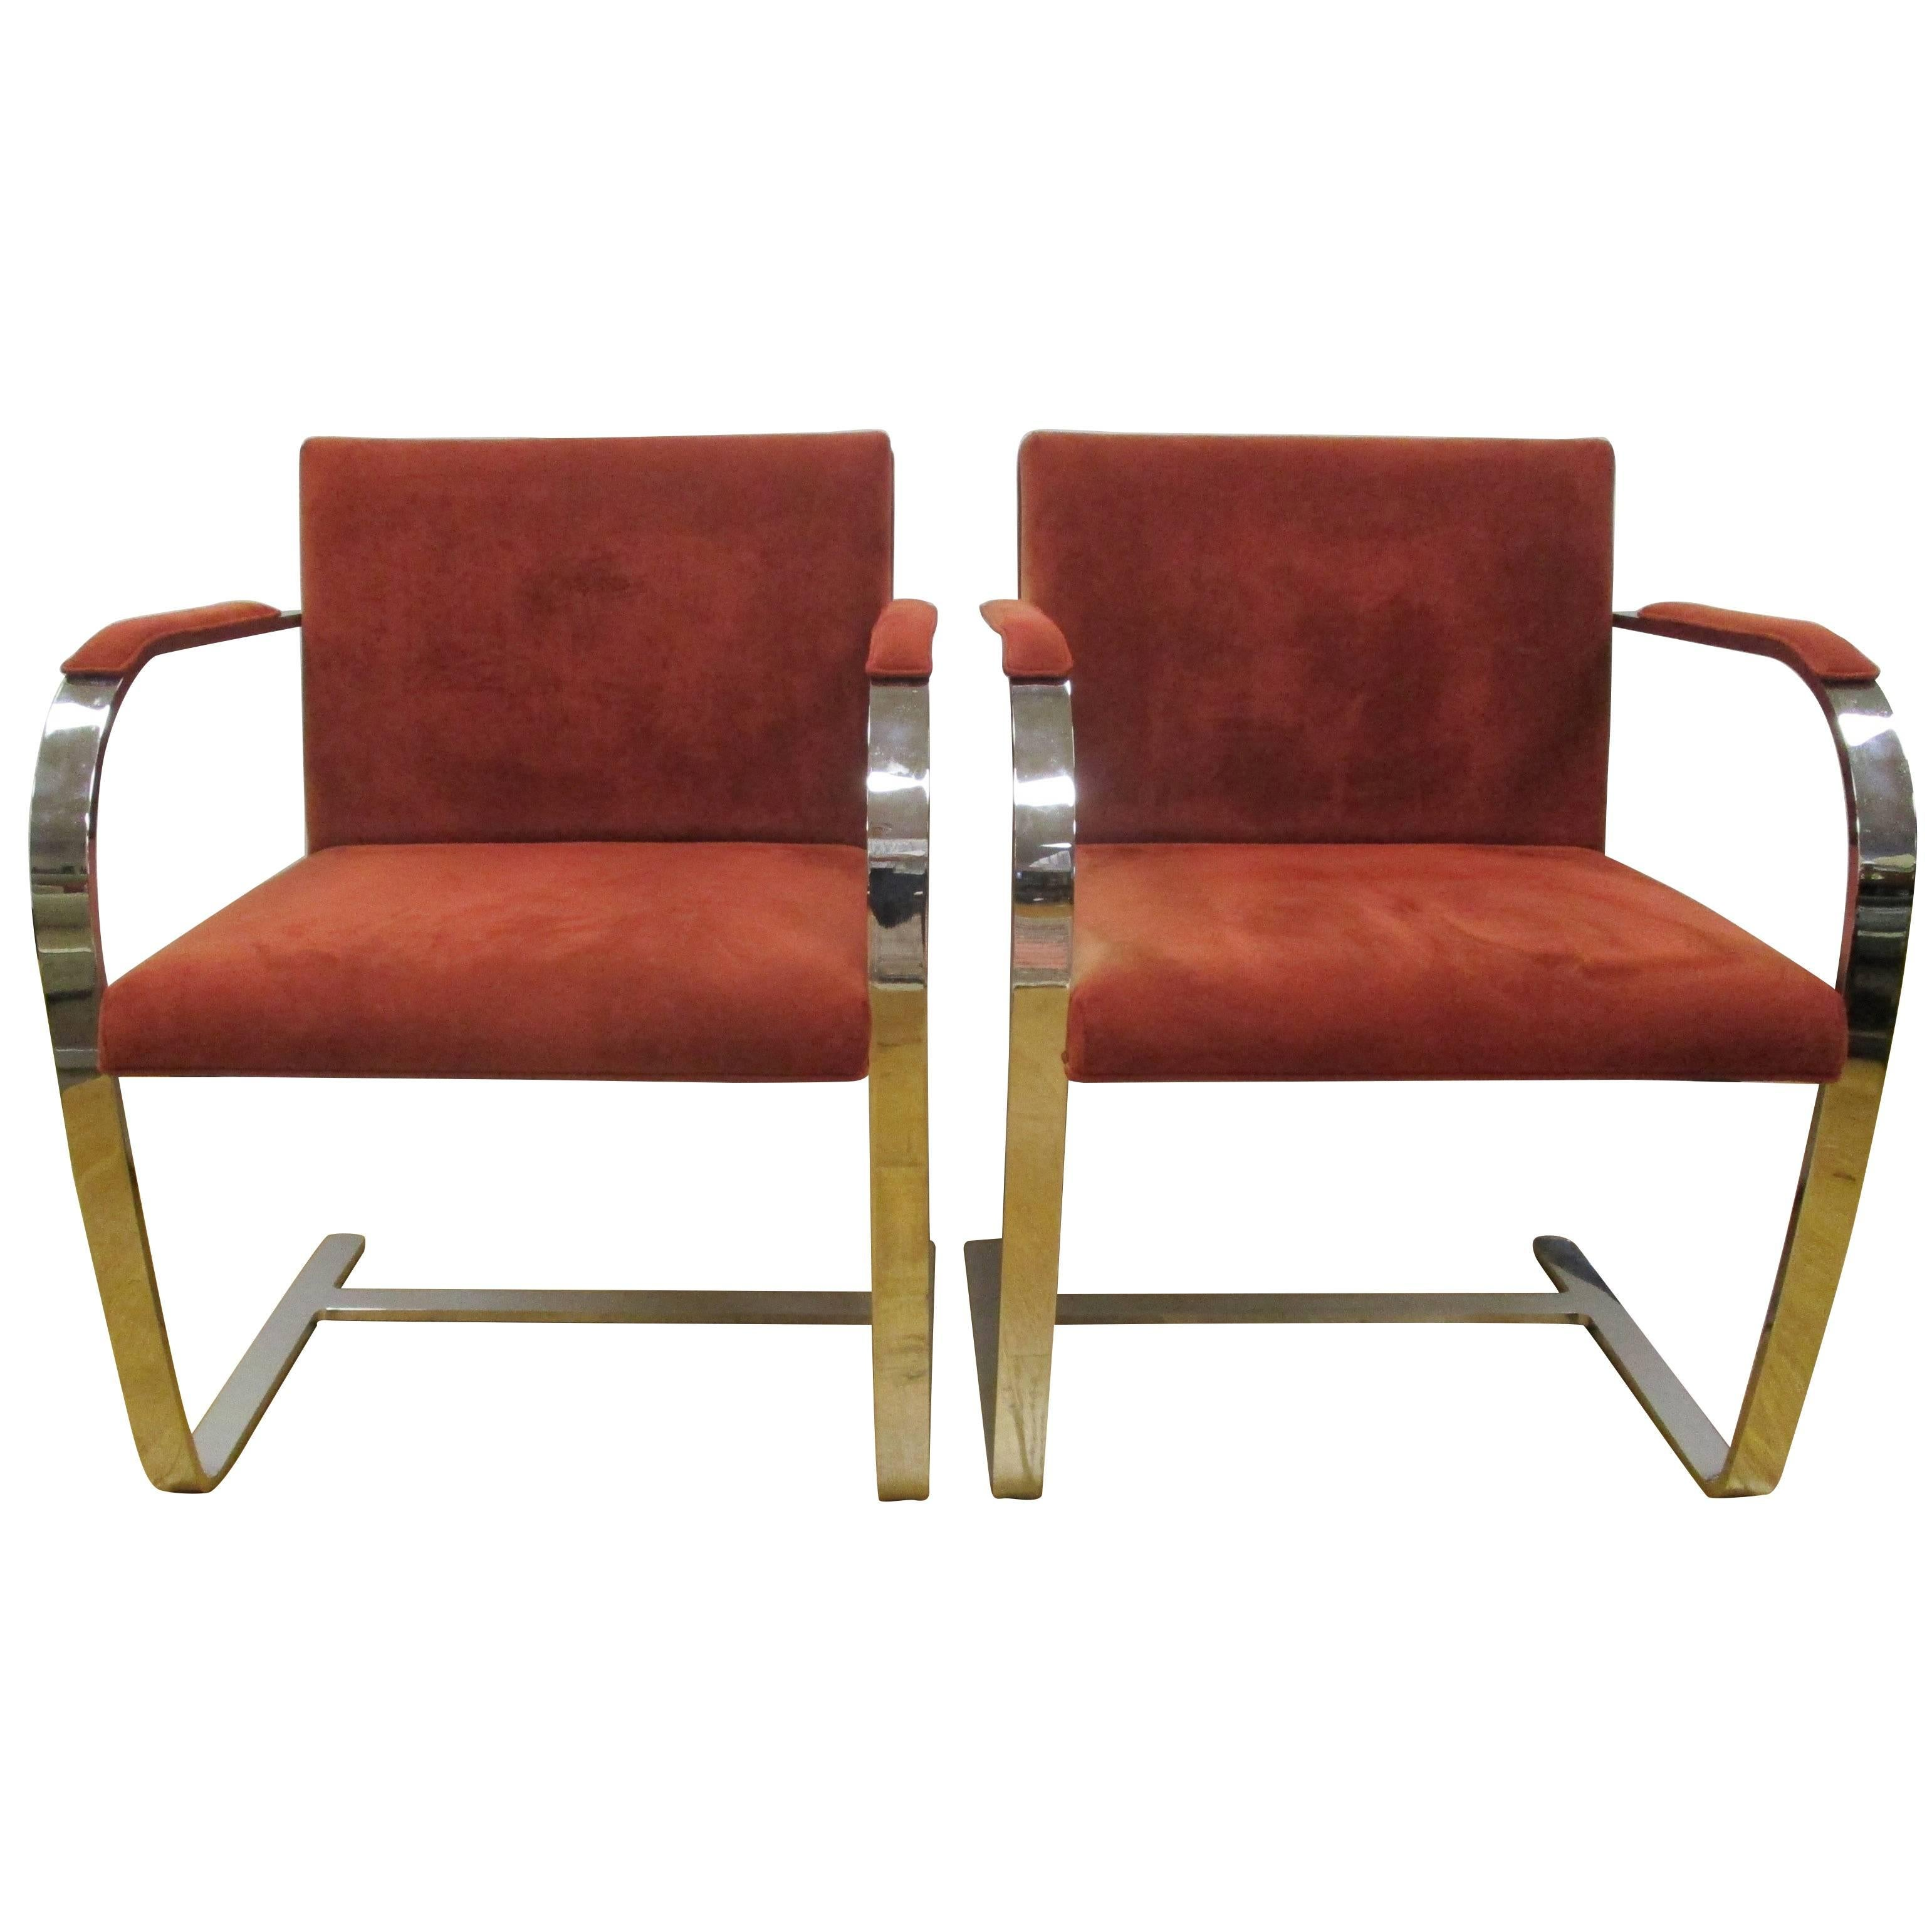 Pair Of Alivar Italy Suede Leather Cantilevered Van Der Rohe Style Chrome  Chairs At 1stdibs